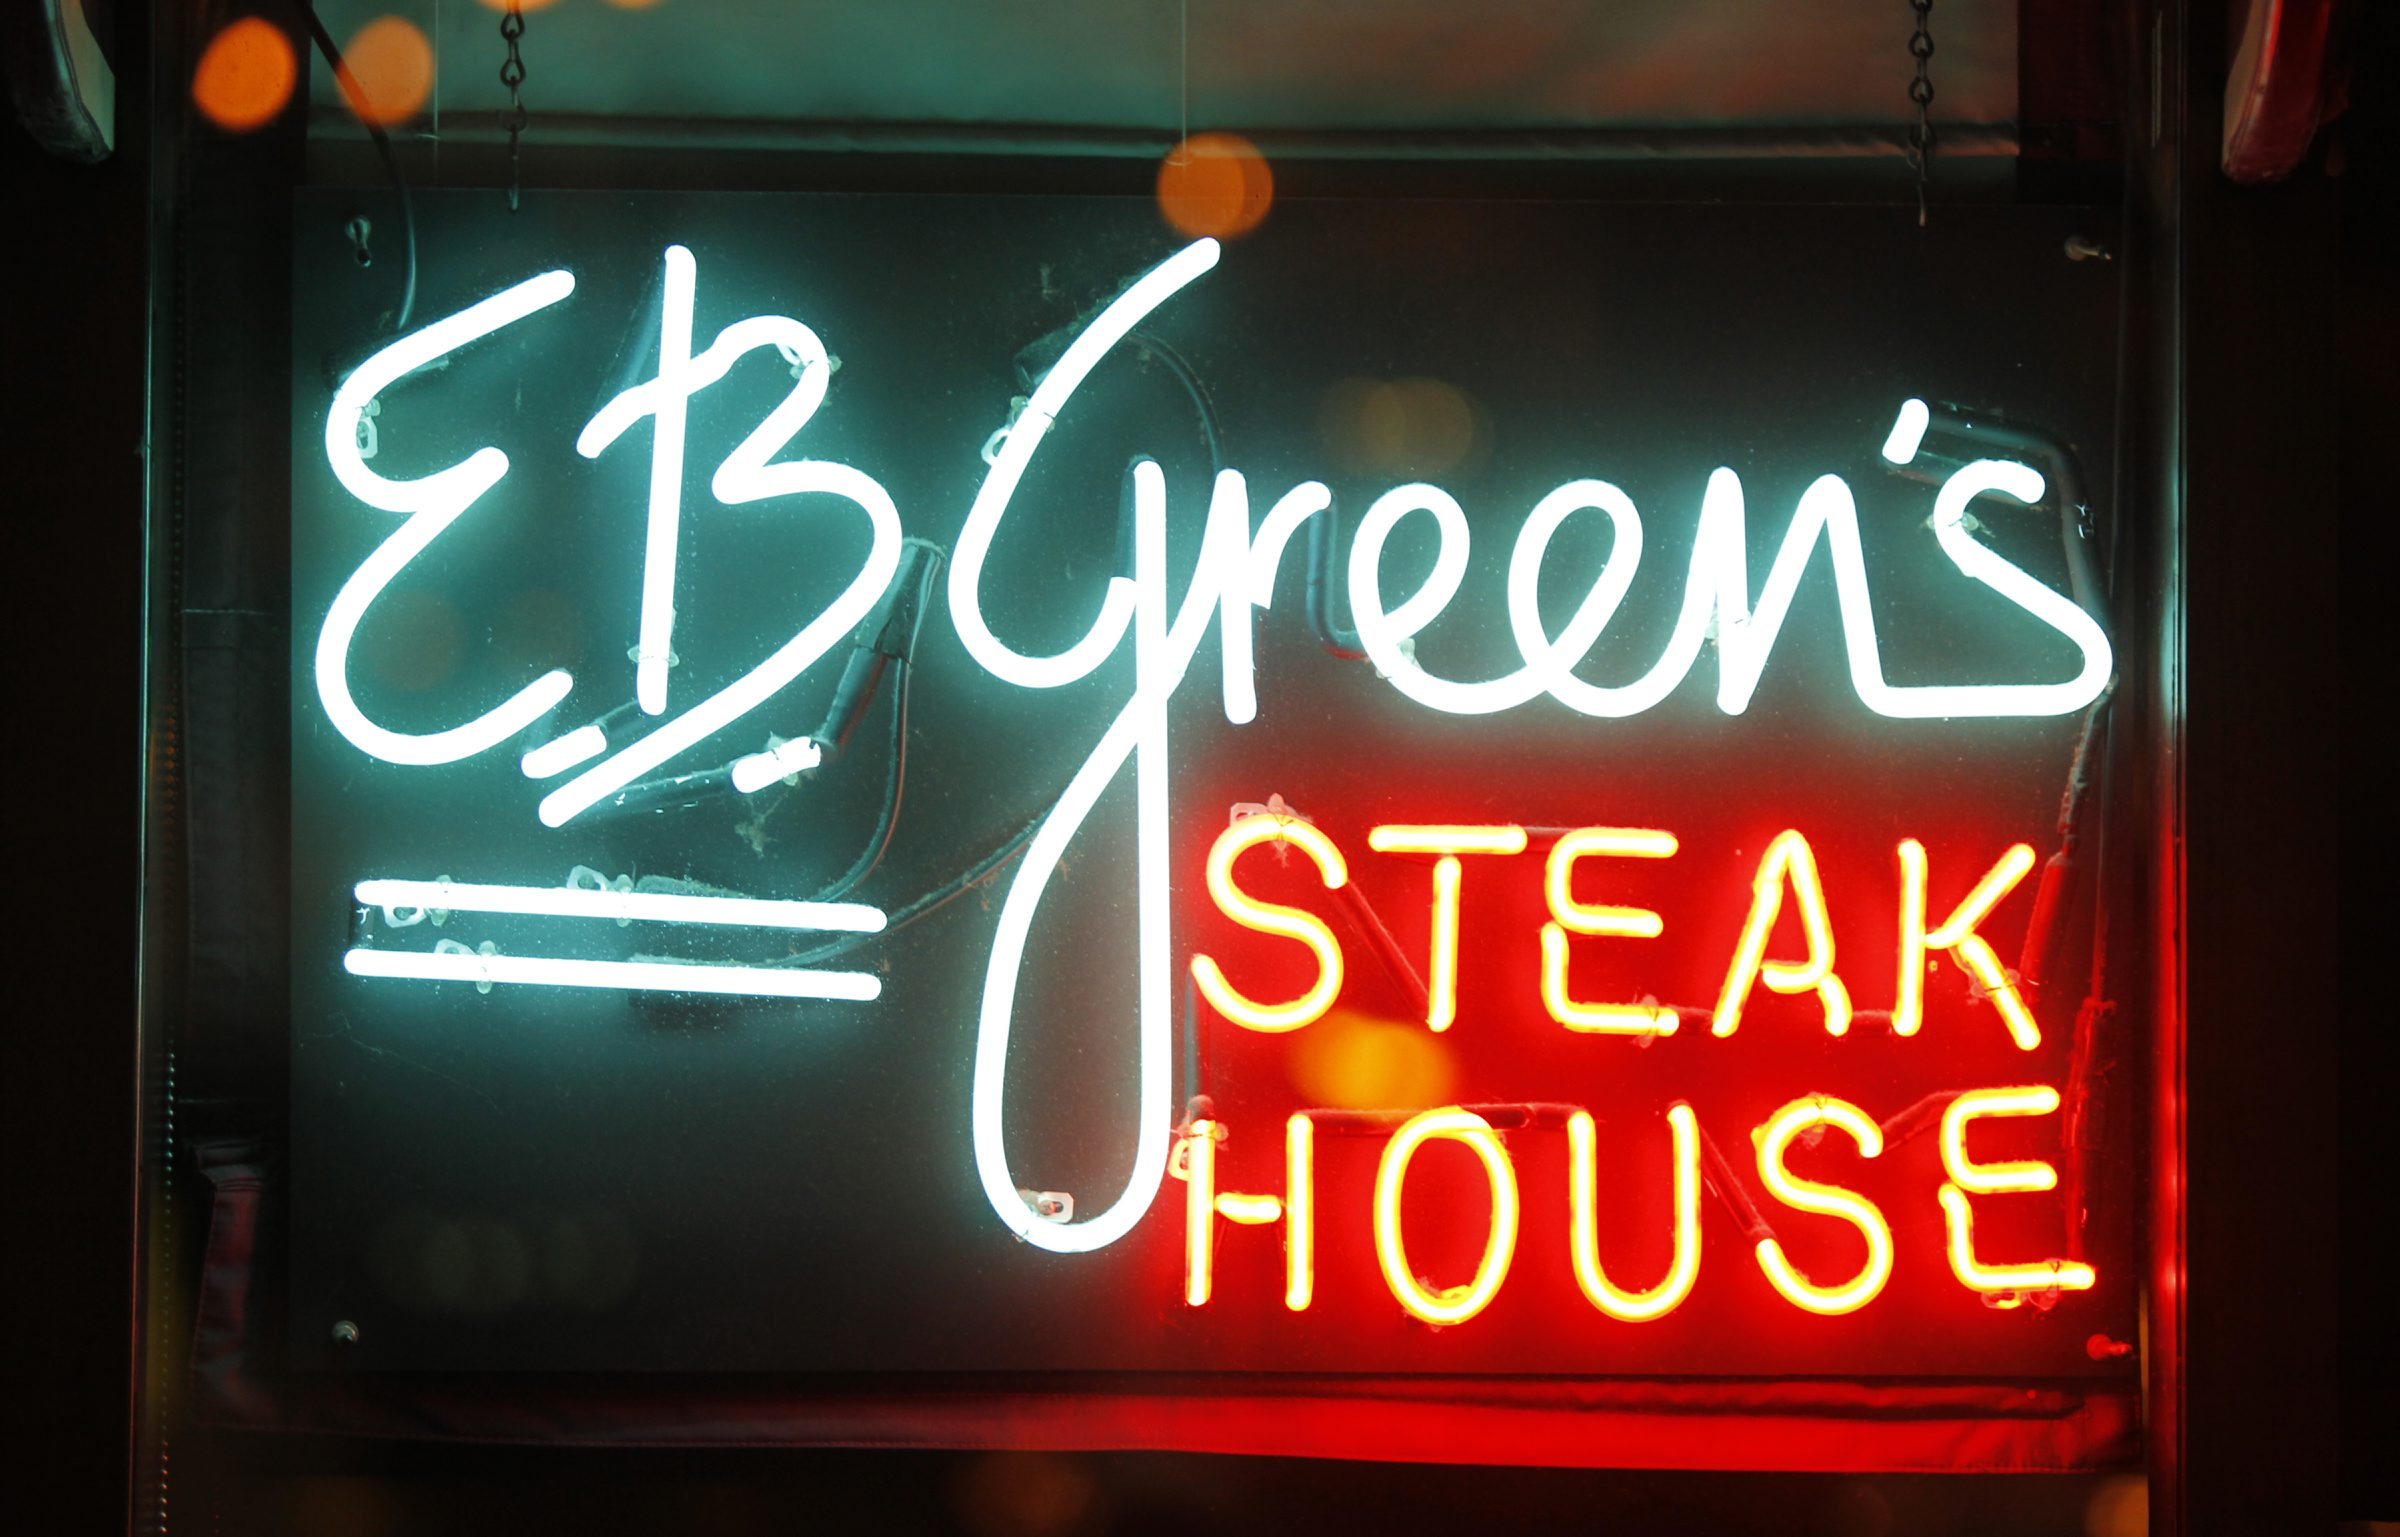 E.B. Green's Steakhouse will be replaced by high-end national chain Morton's Steakhouse. (Buffalo News file photo)